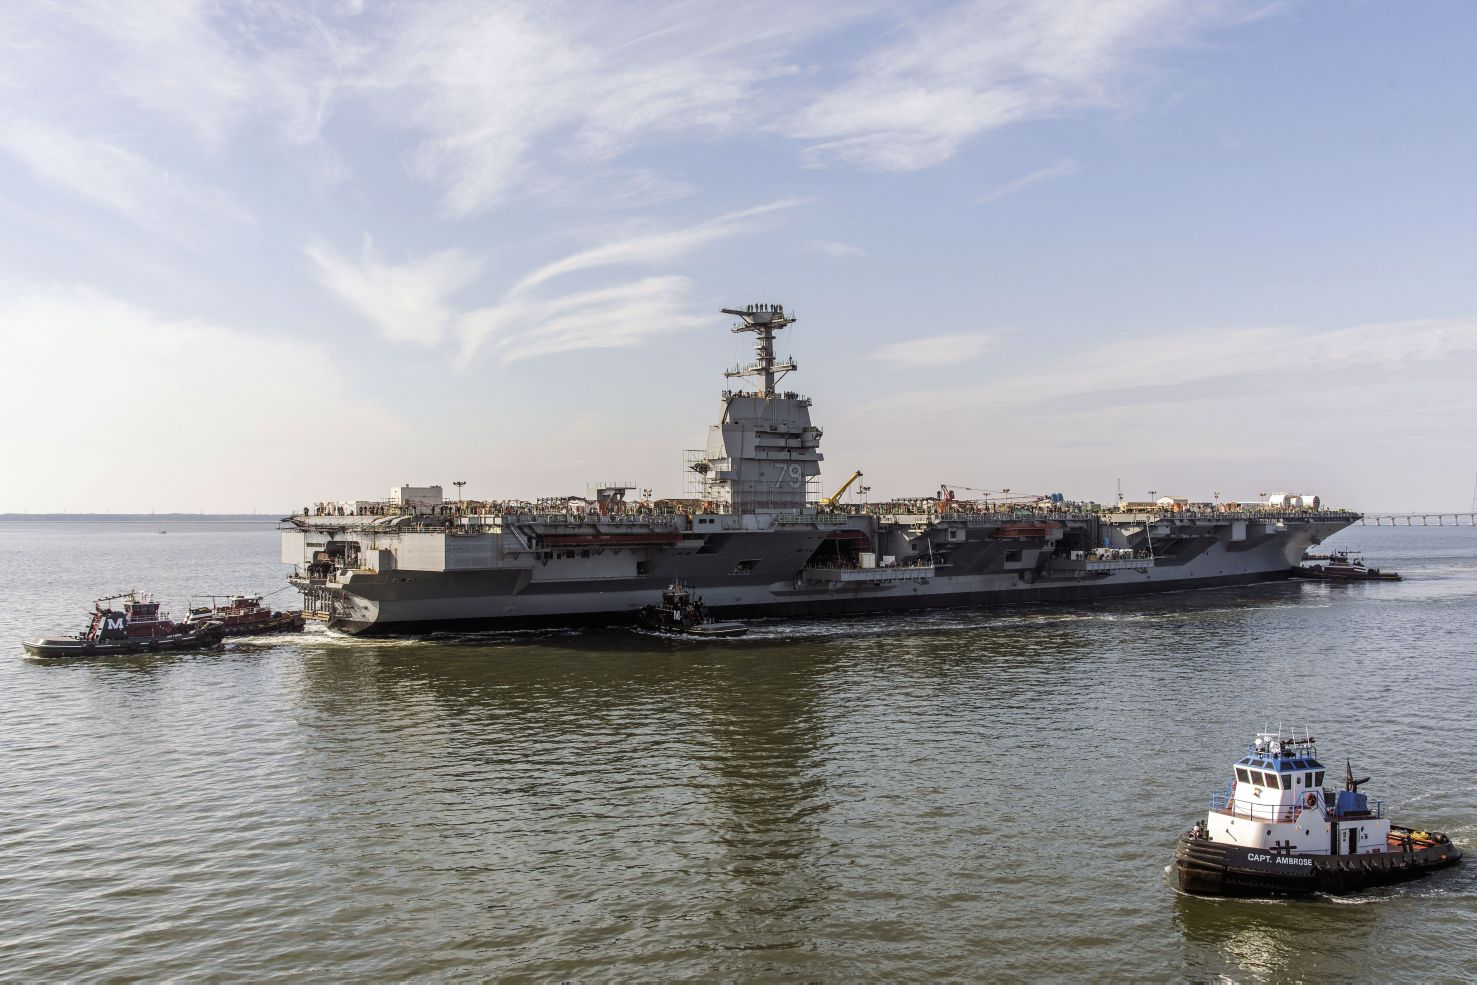 Huntington Ingalls Industries' Newport News Shipbuilding launched aircraft carrier          John F Kennedy          on 16 December 2019.        (Huntington Ingalls Industries)